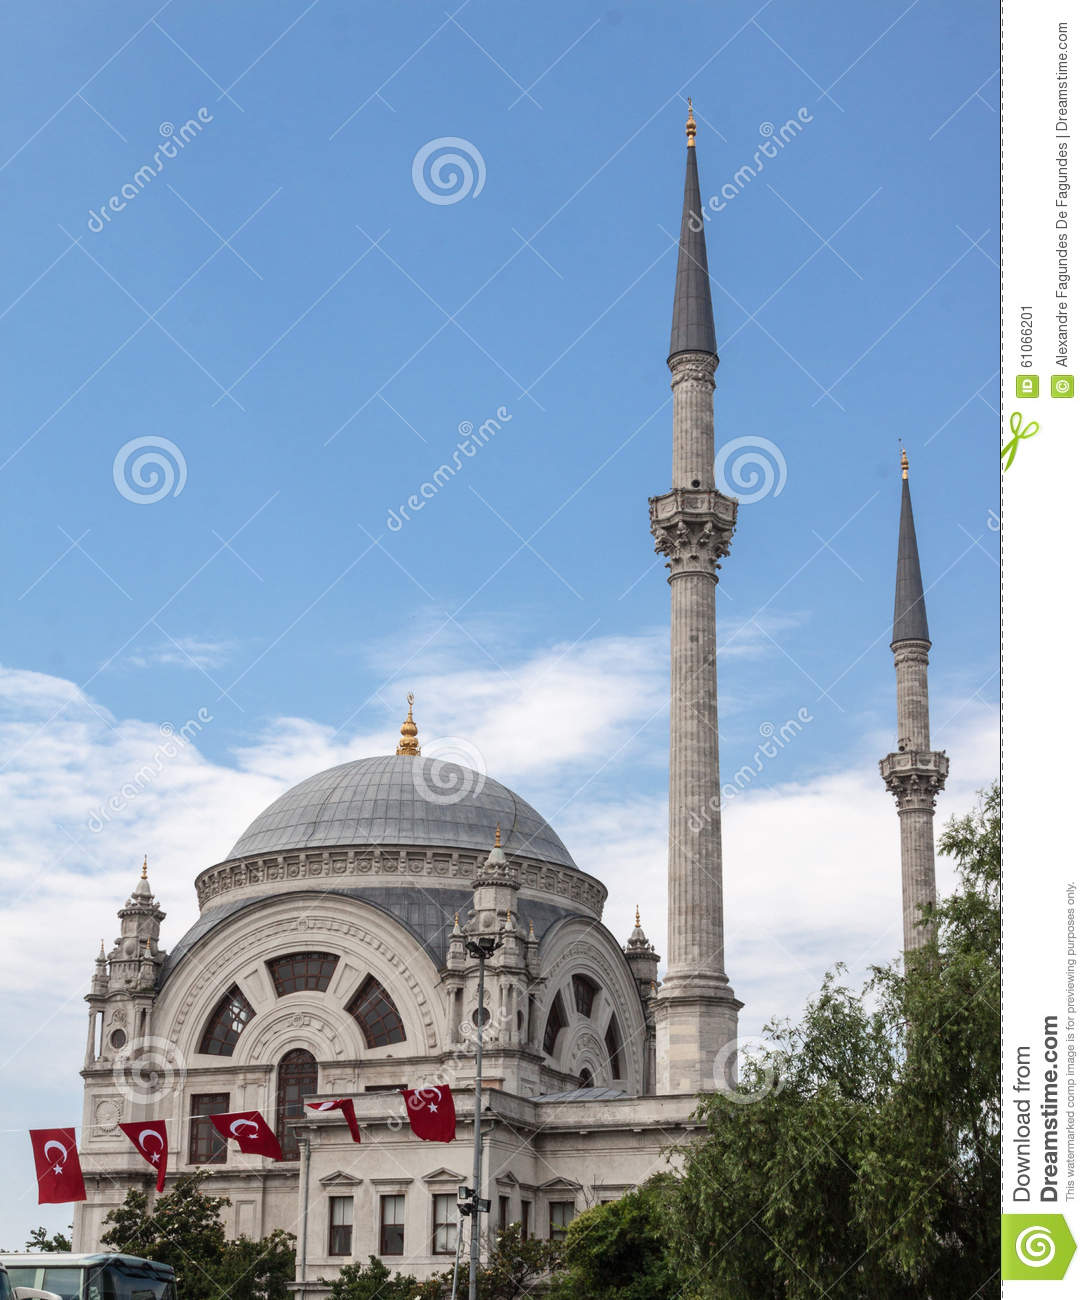 how to say mosque in turkish